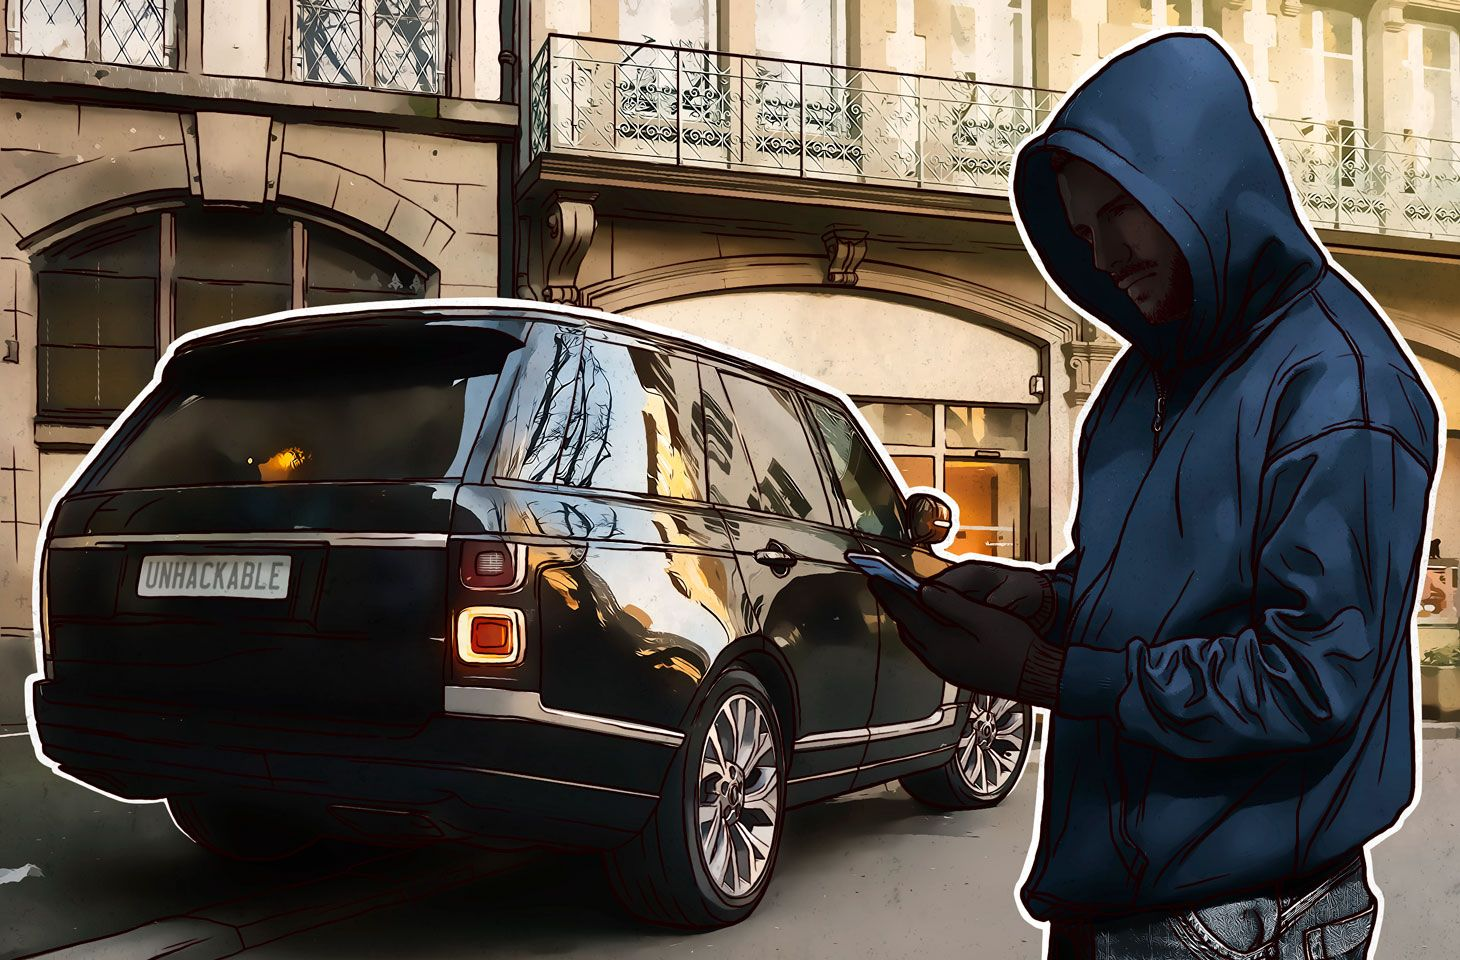 How secure are your vehicle's smart devices?